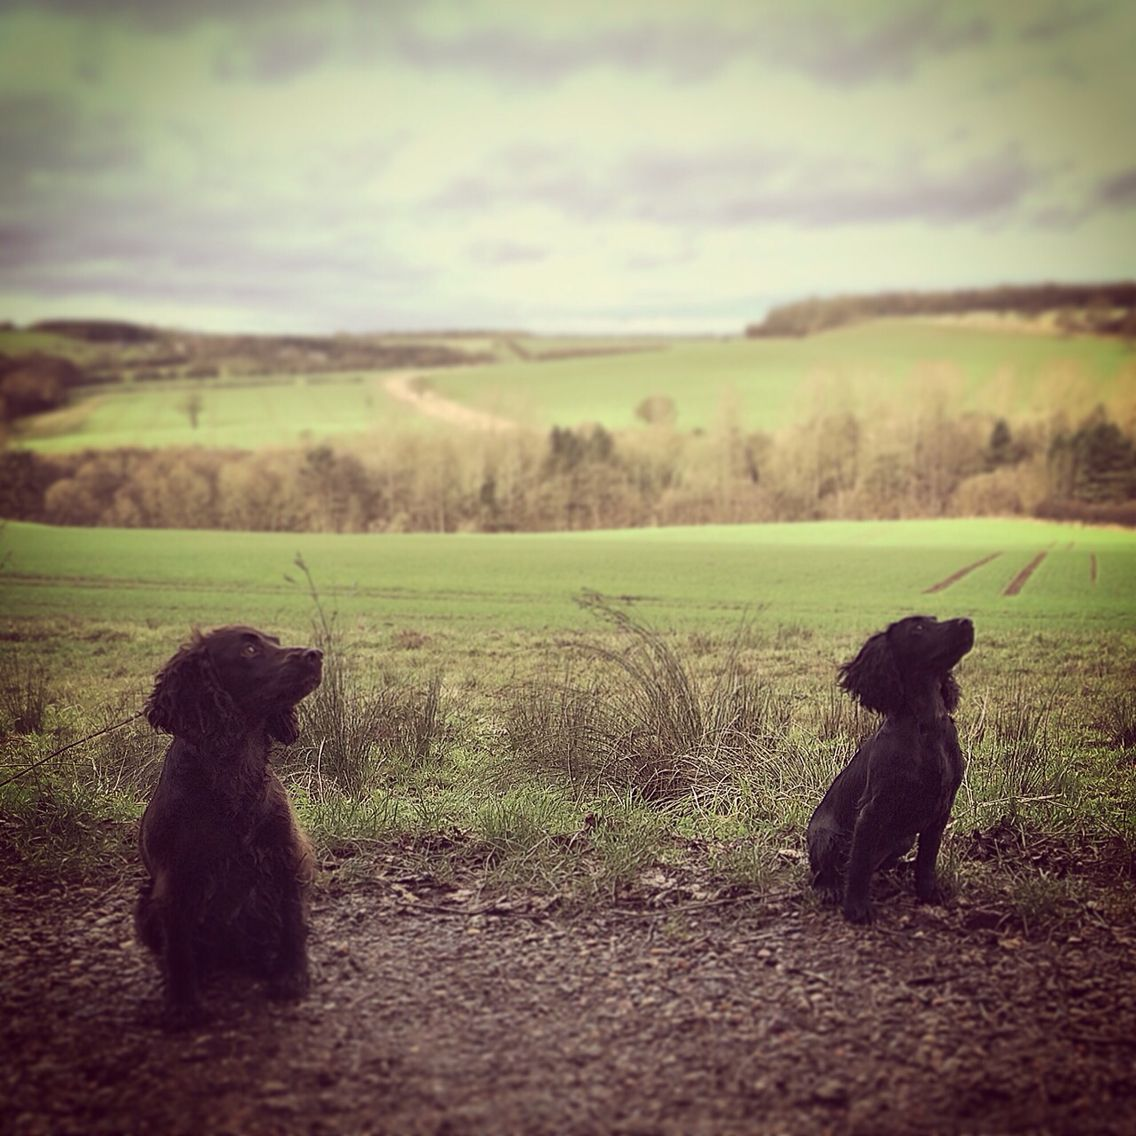 My two English Working Cocker Spaniels. Snoop and Zip. Derbyshire UK. Christmas 2014.